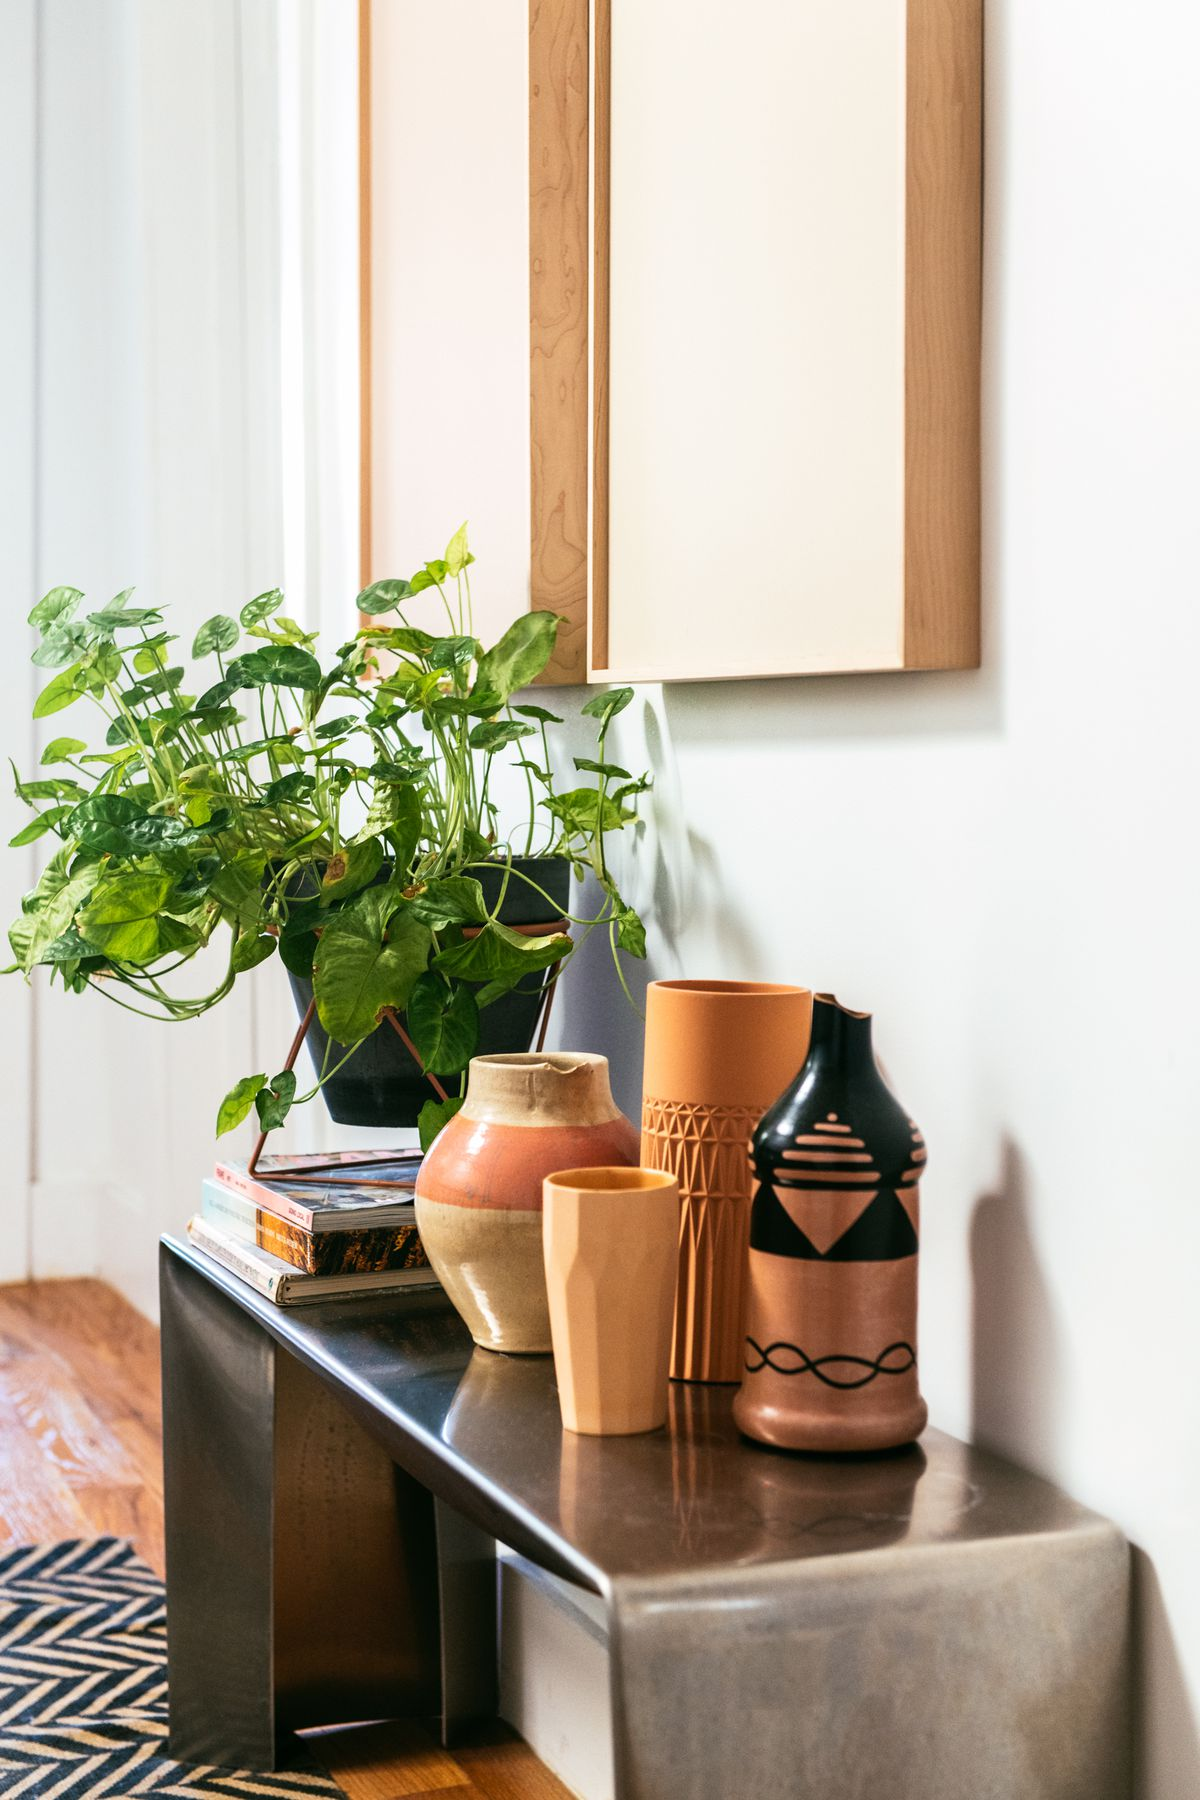 A metal bench sits against a painted white wall. There are assorted ceramics and a houseplant in a planter on the bench. There is a patterned black and white area rug on the floor.